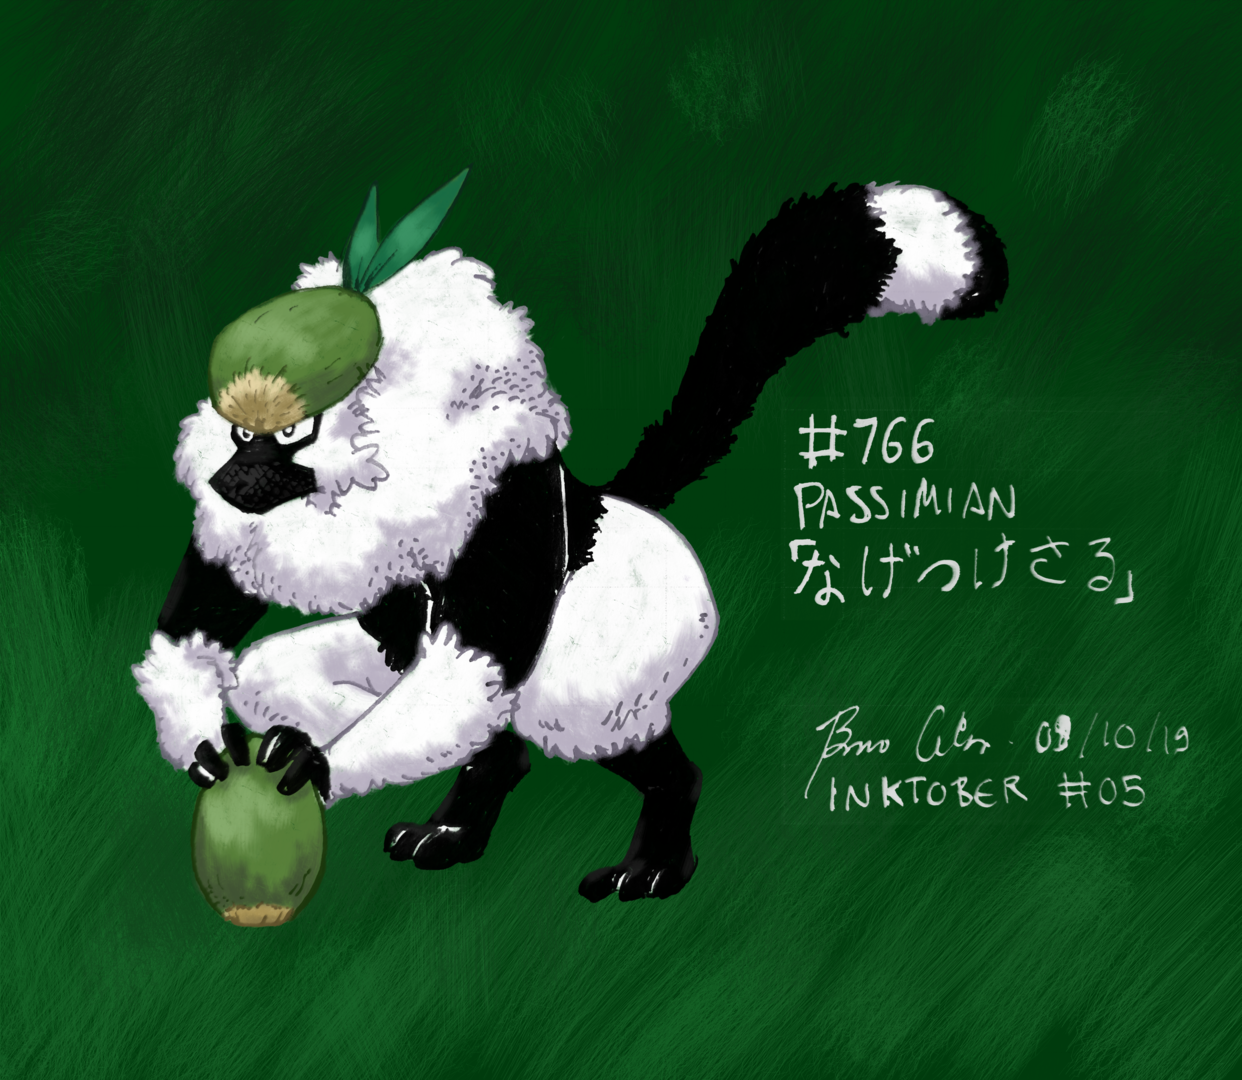 Colored Inks #05 - Passimian